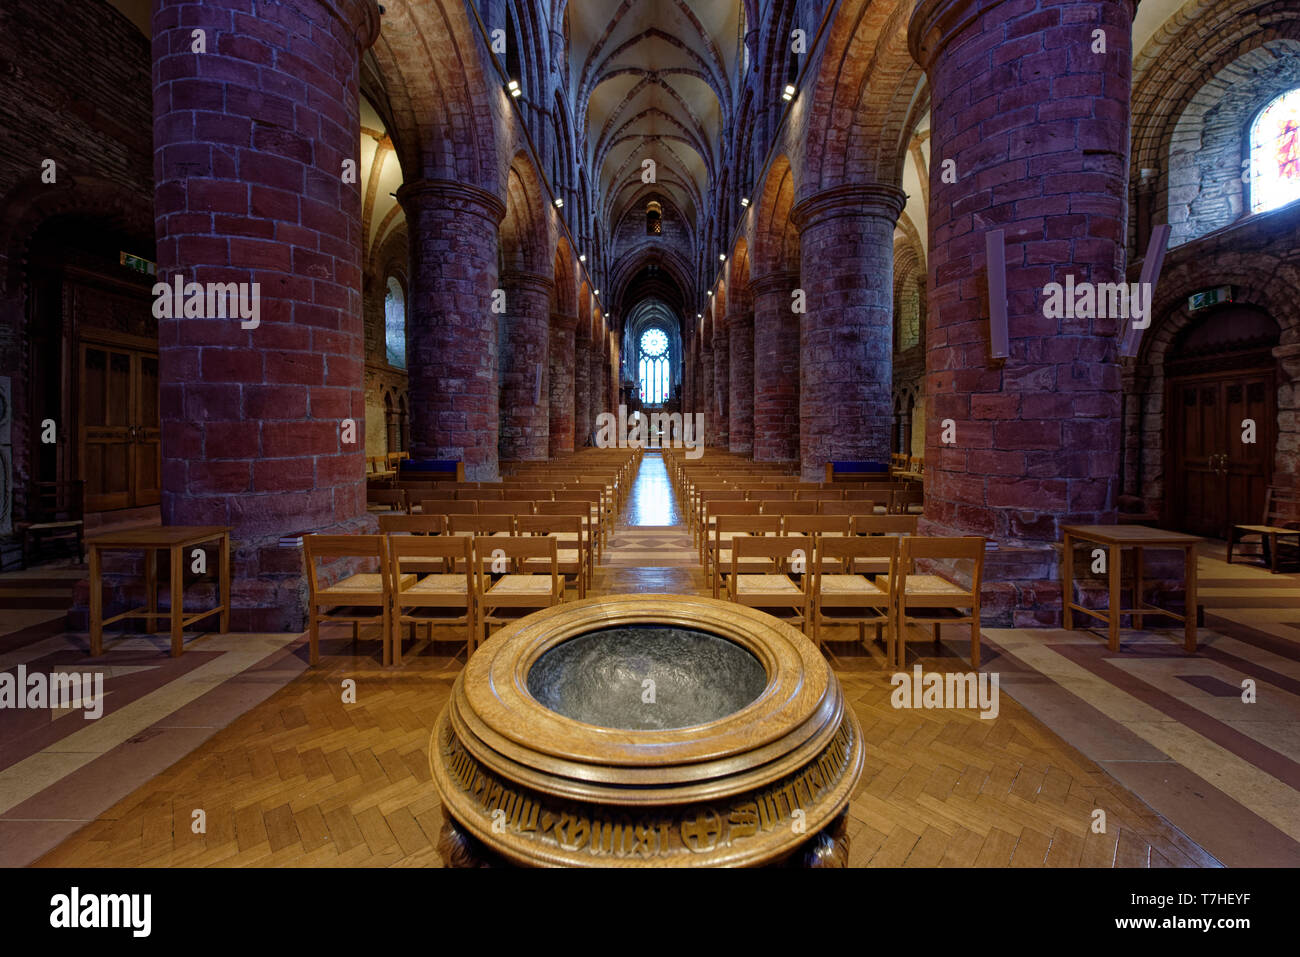 The beautiful interior of St Magnus Cathedral, Britains most northerly Cathedral in the lovely city of Kirkwall in Orkney - Stock Image